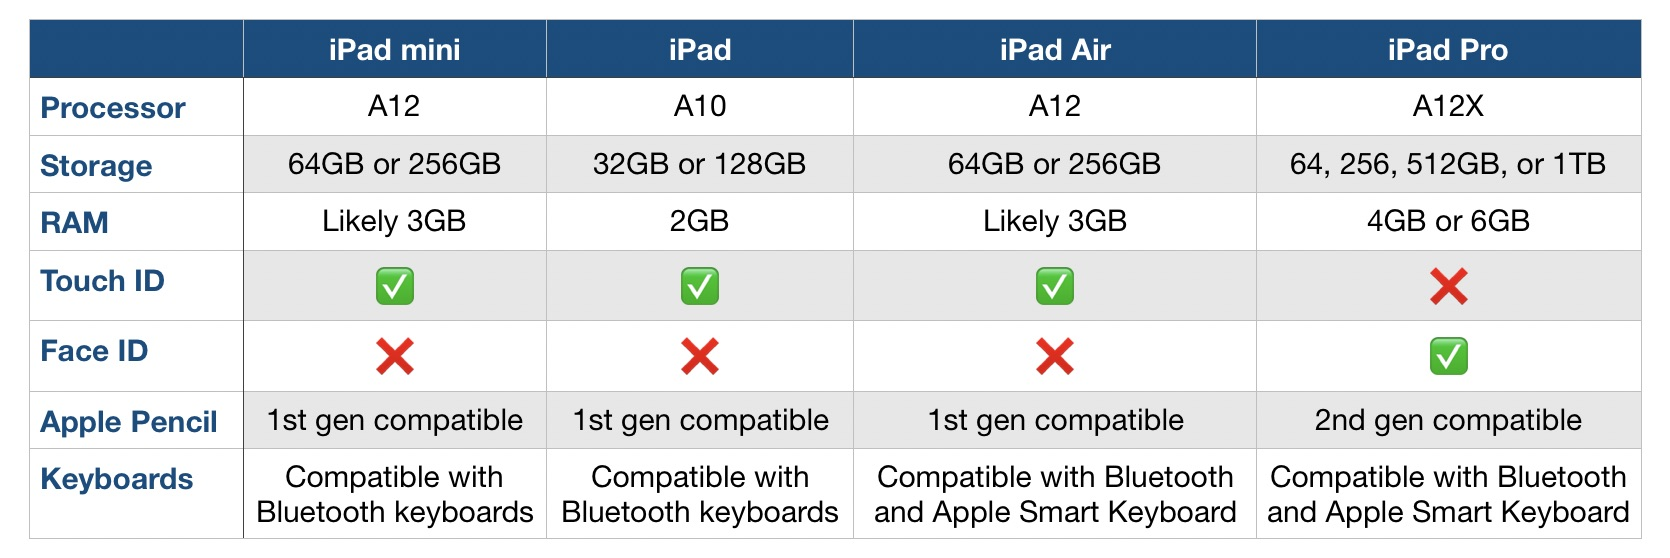 iPad lineup comparion processor, RAM, storage